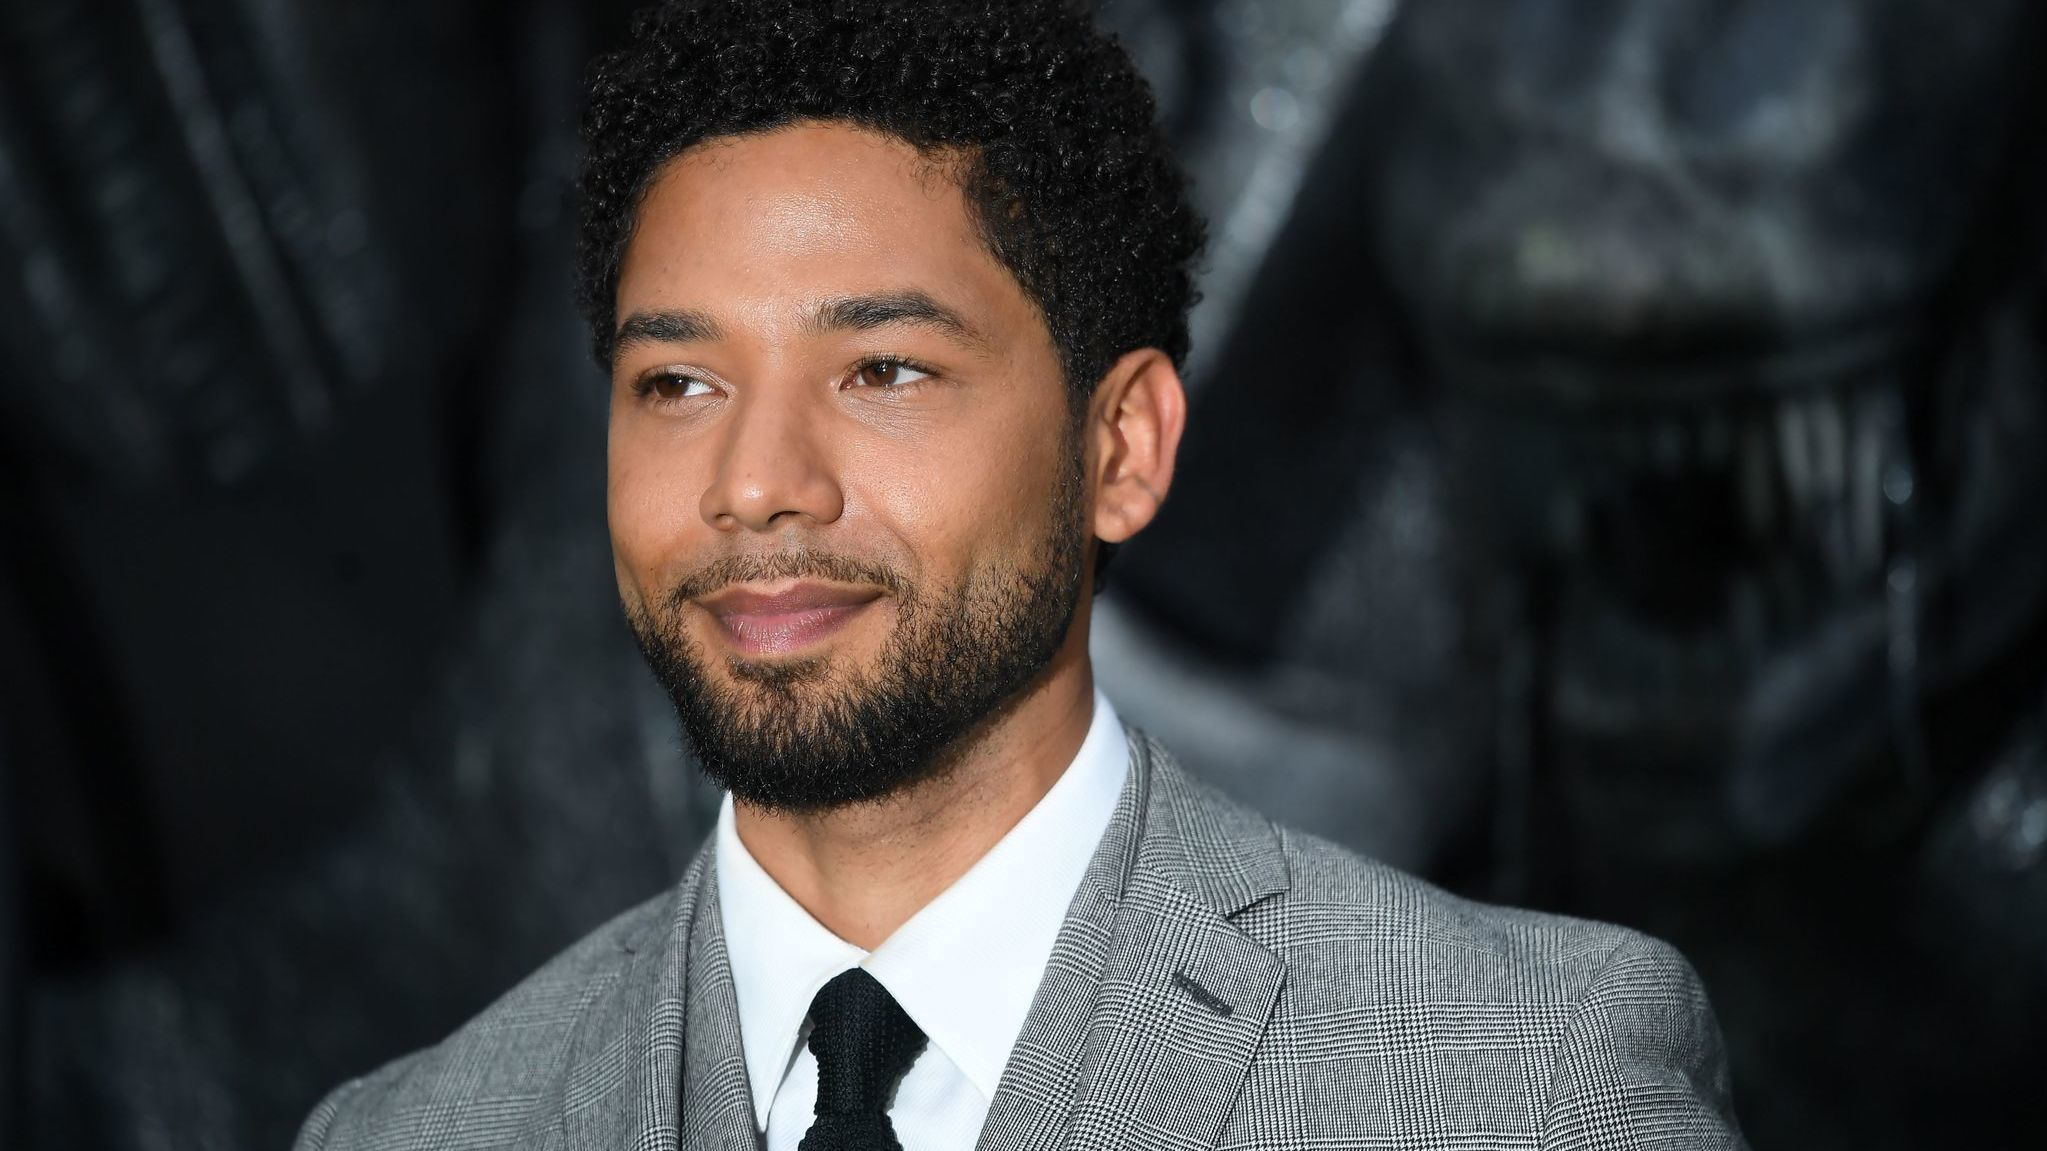 Chicago's reputation held up just fine under the weight of Jussie Smollett, thank you very much